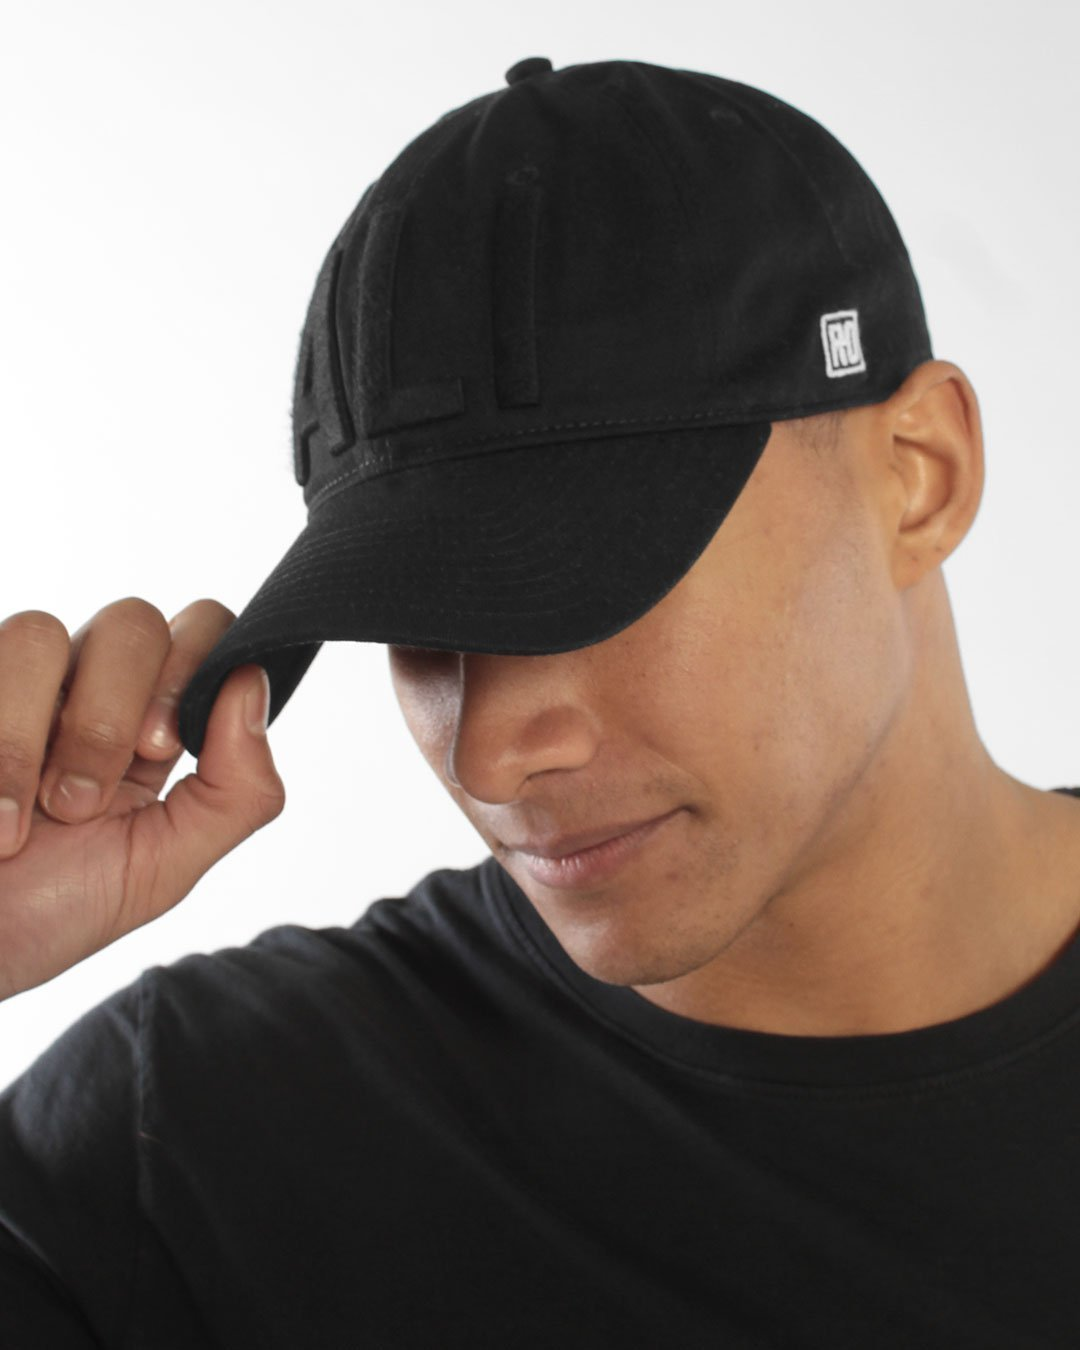 Ali Monochrome Adjustable Hat - Roots of Inc dba Roots of Fight